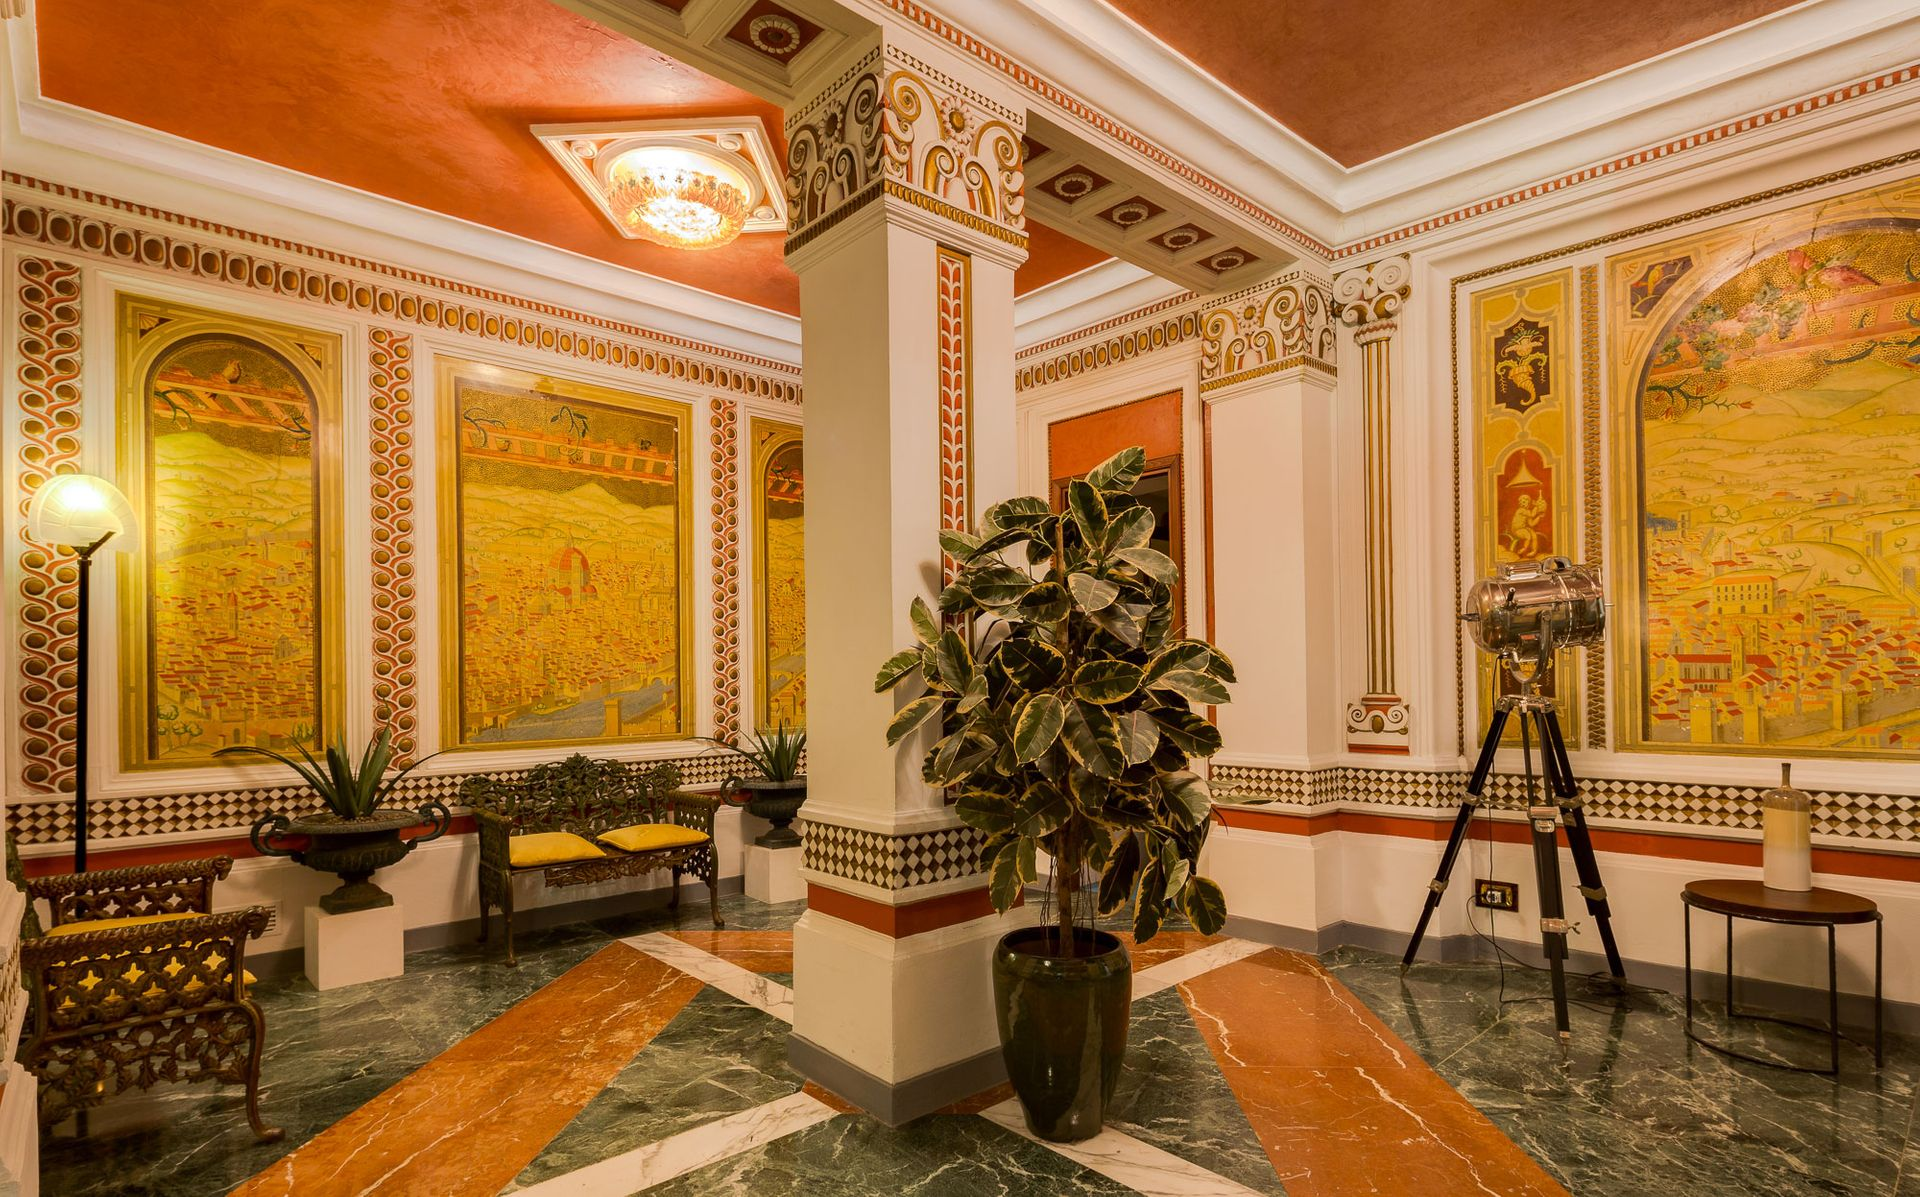 Roma Hotel Florence, Florence, Italy | Book Online